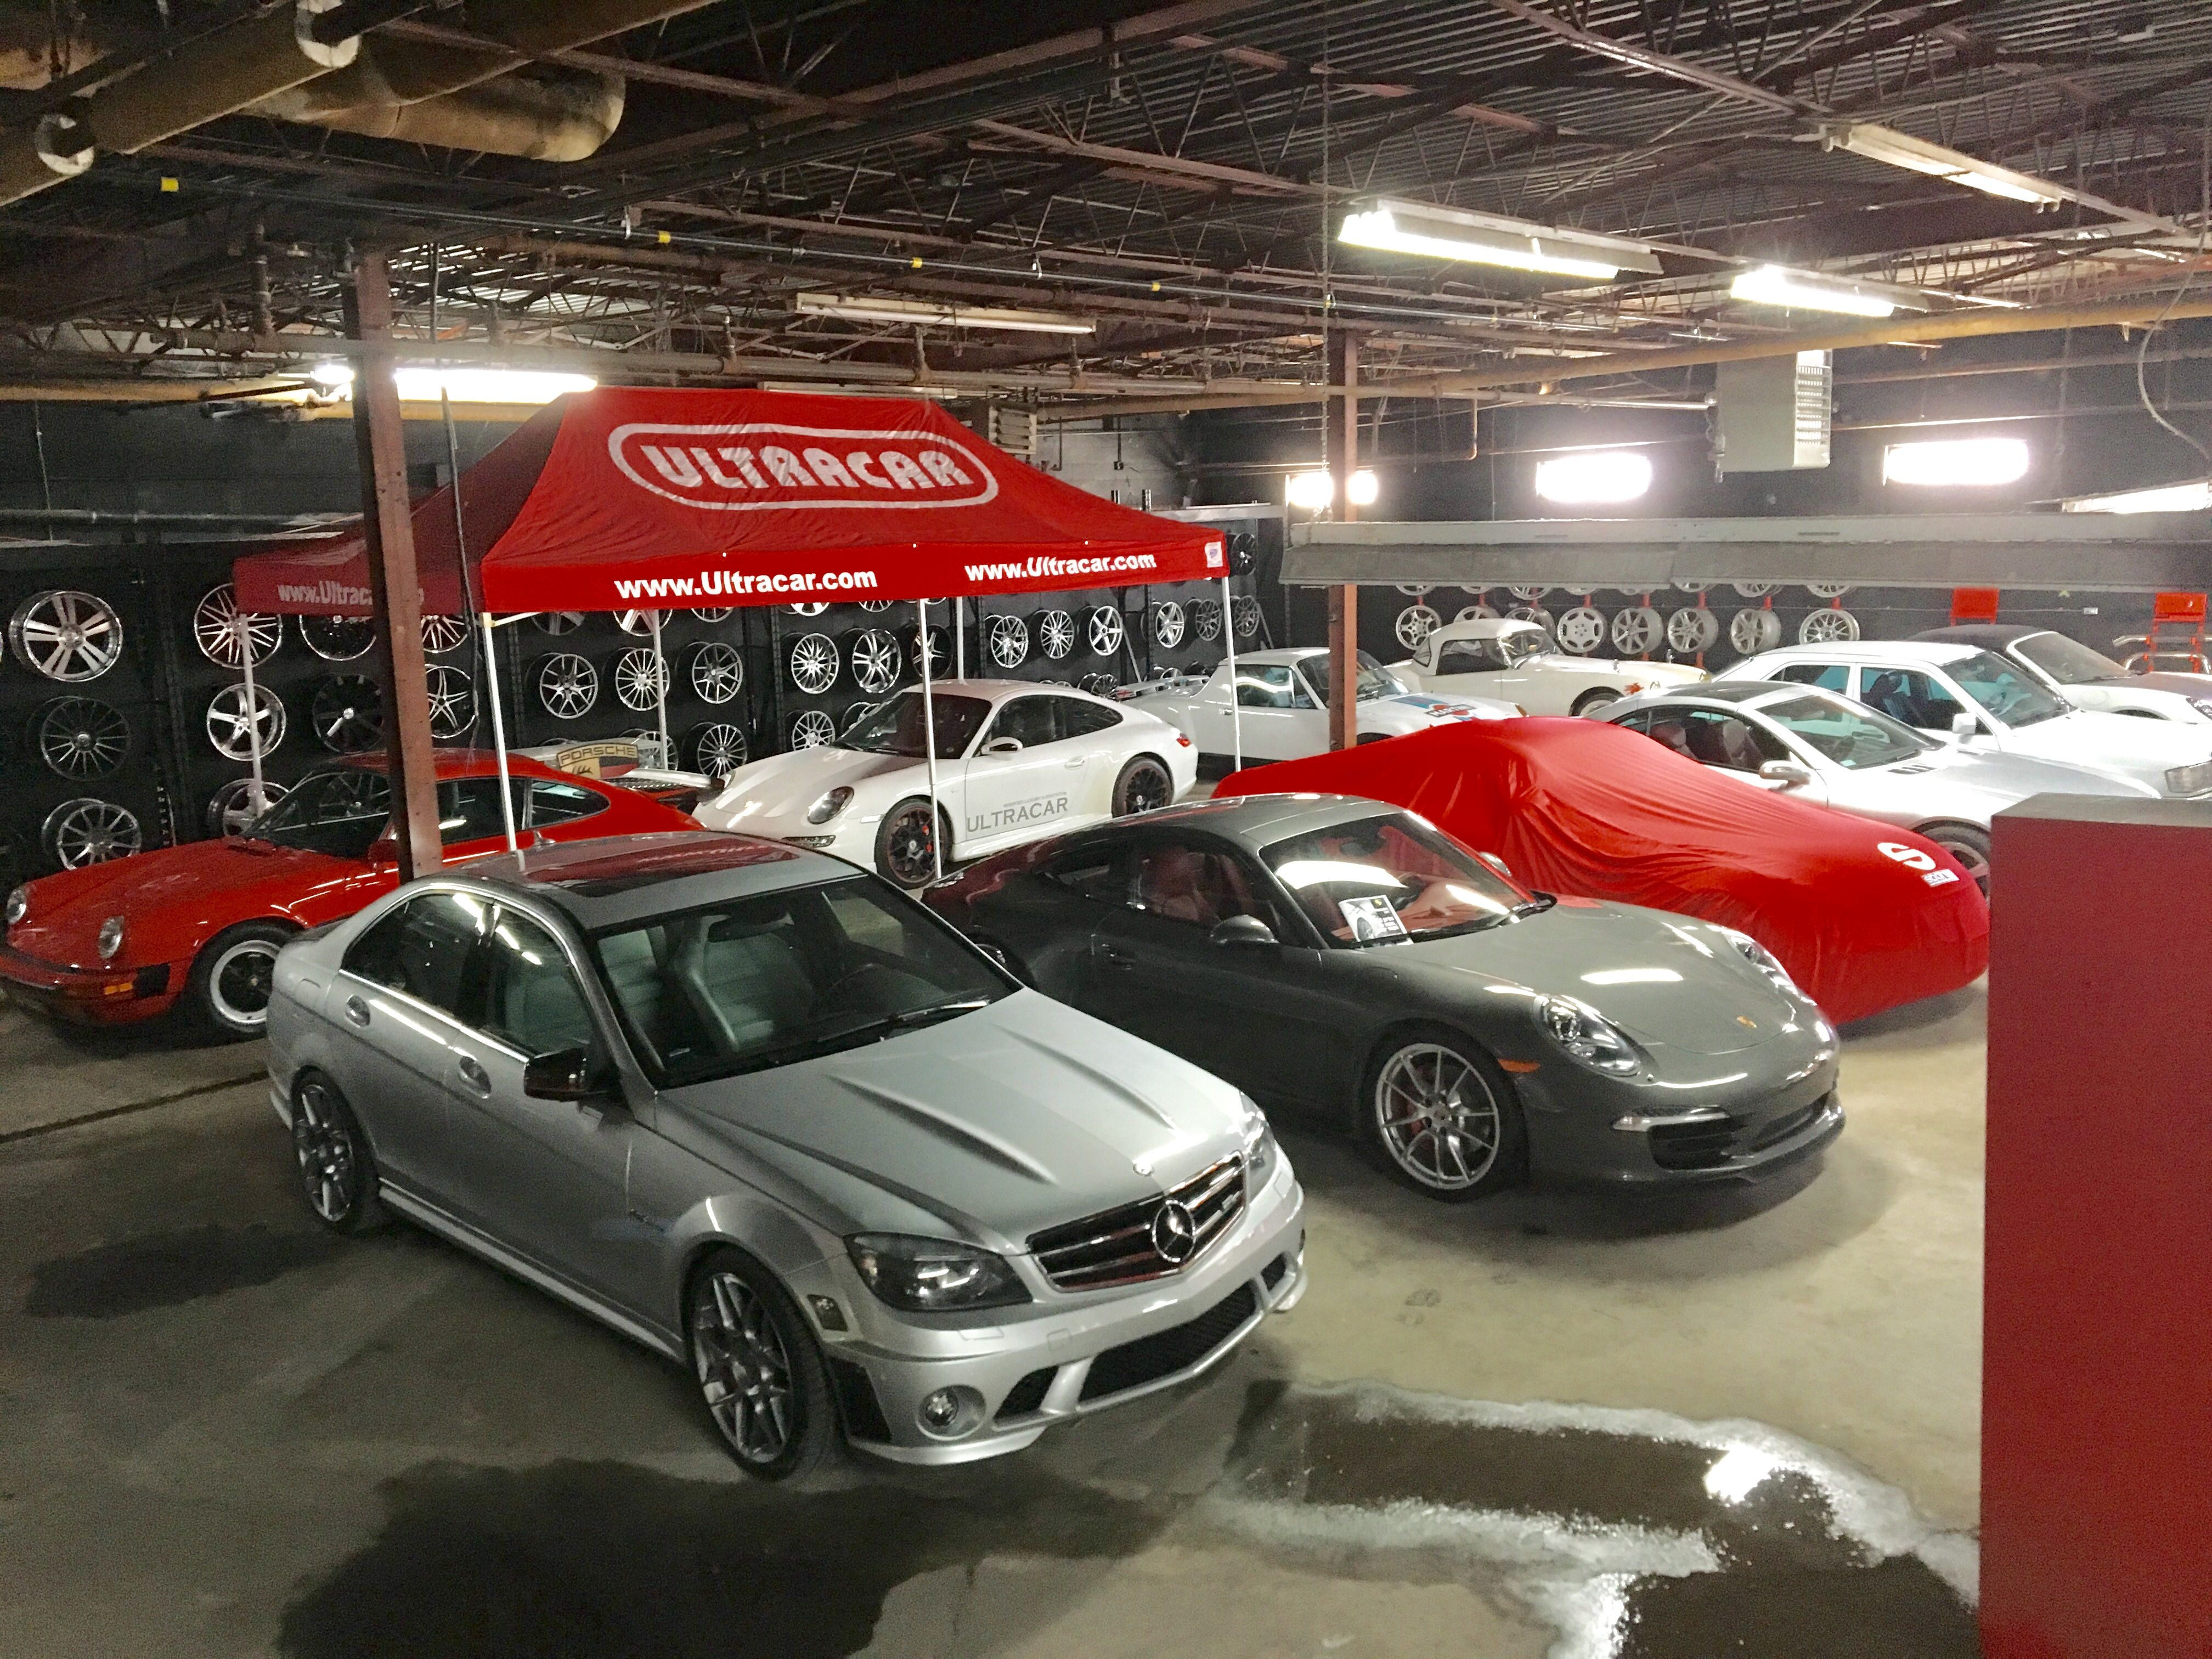 The New Ultracar Super Shop At 1254 Marcel Laurin Montreal Car Porsche Montreal